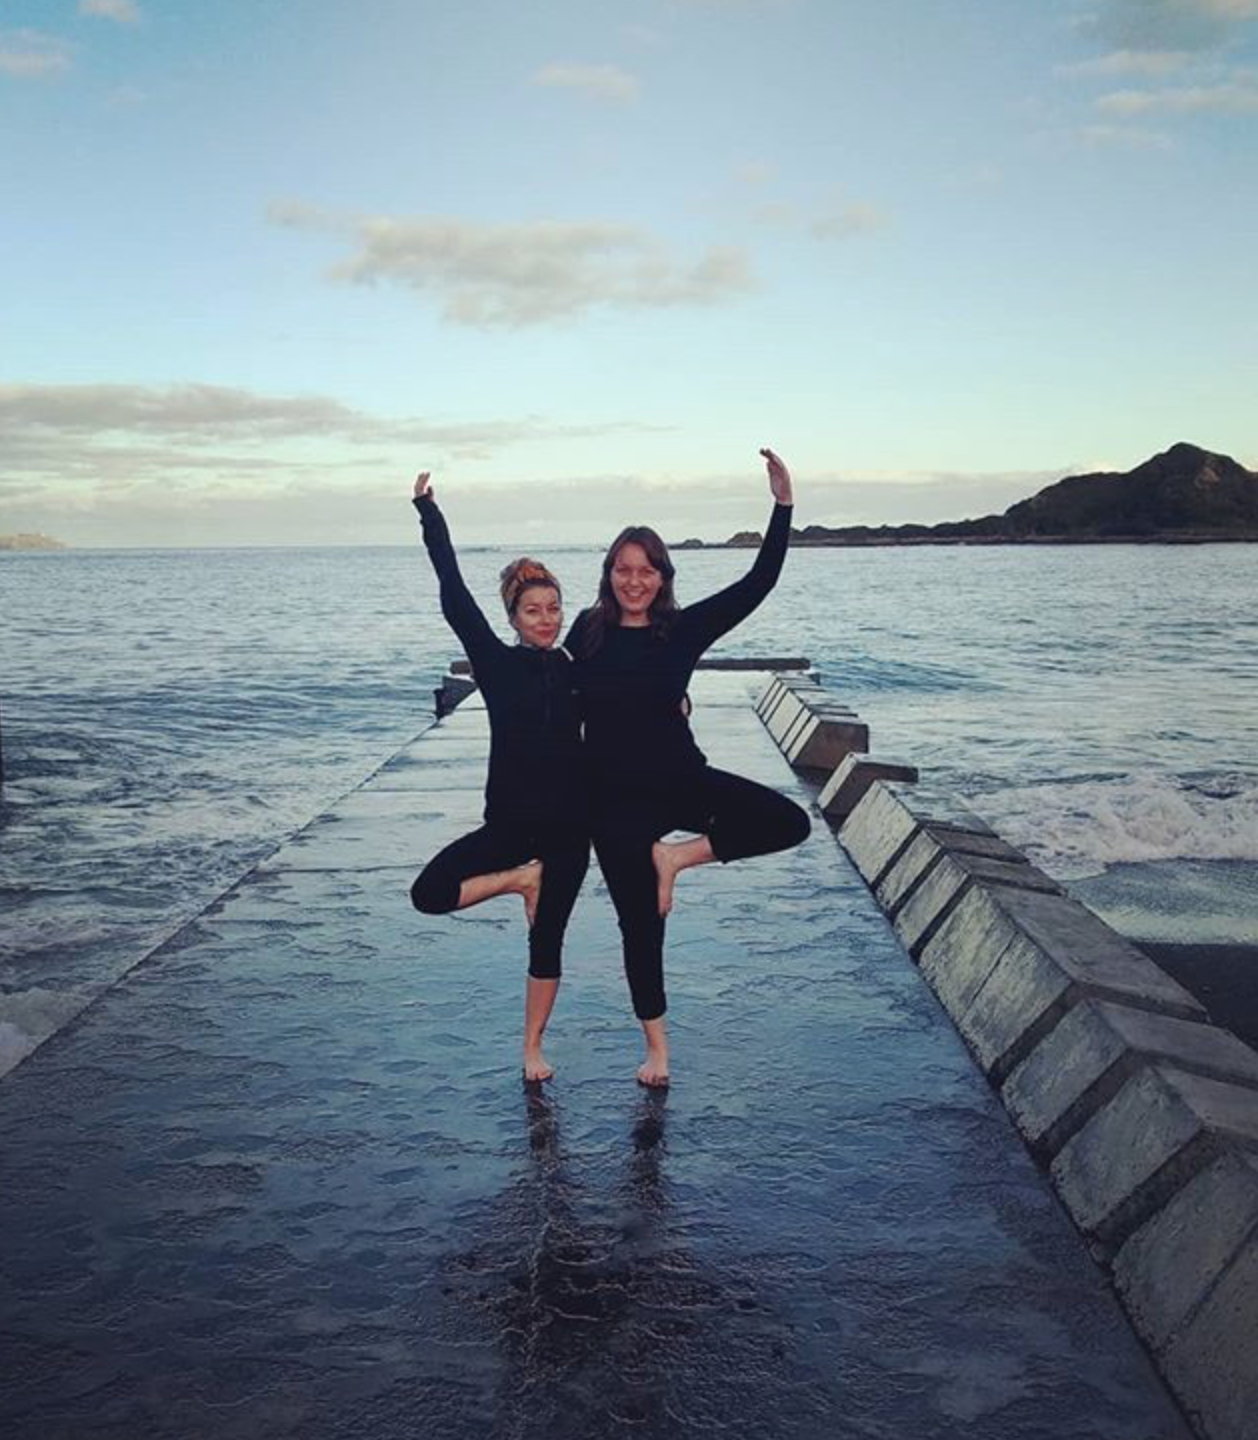 Two women hold each other as they both do tree pose on a dock by the water.